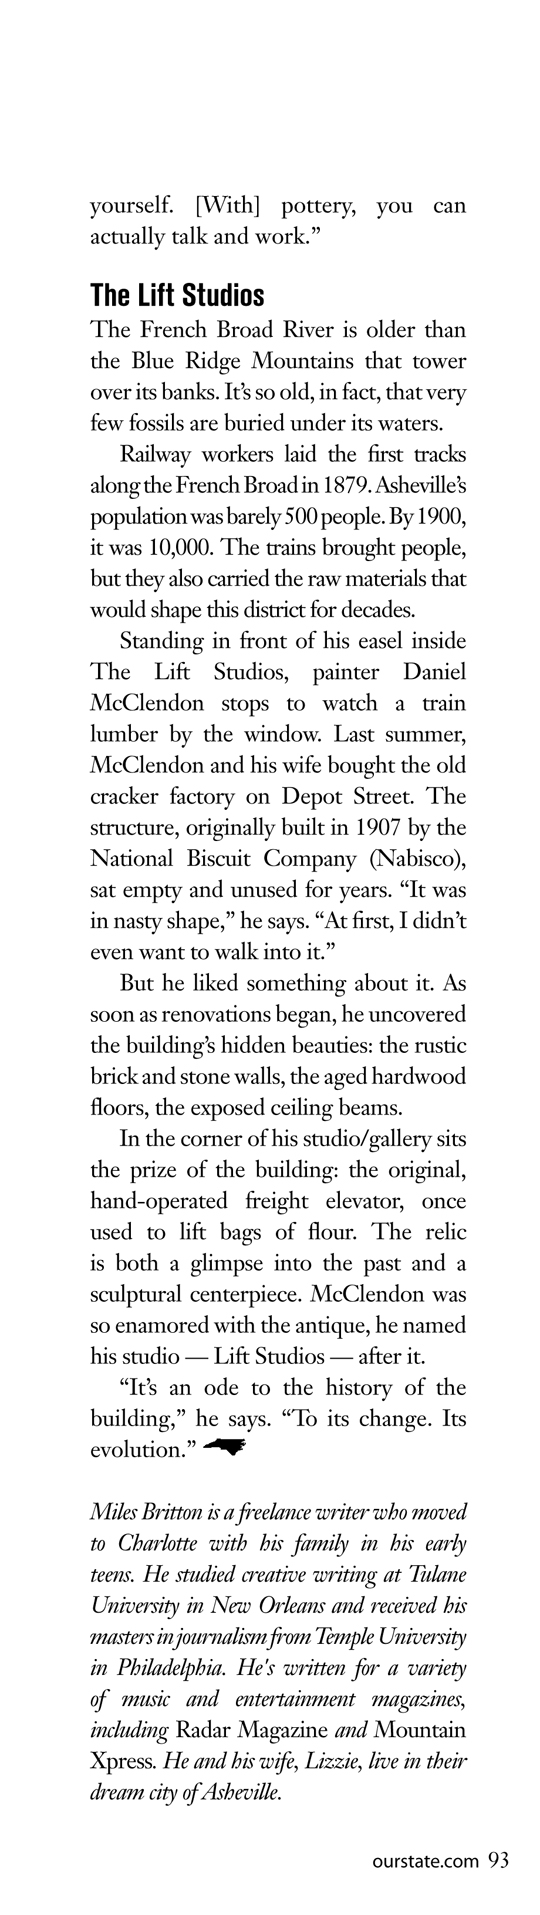 Our State Article about Daniel McClendon Asheville Artist